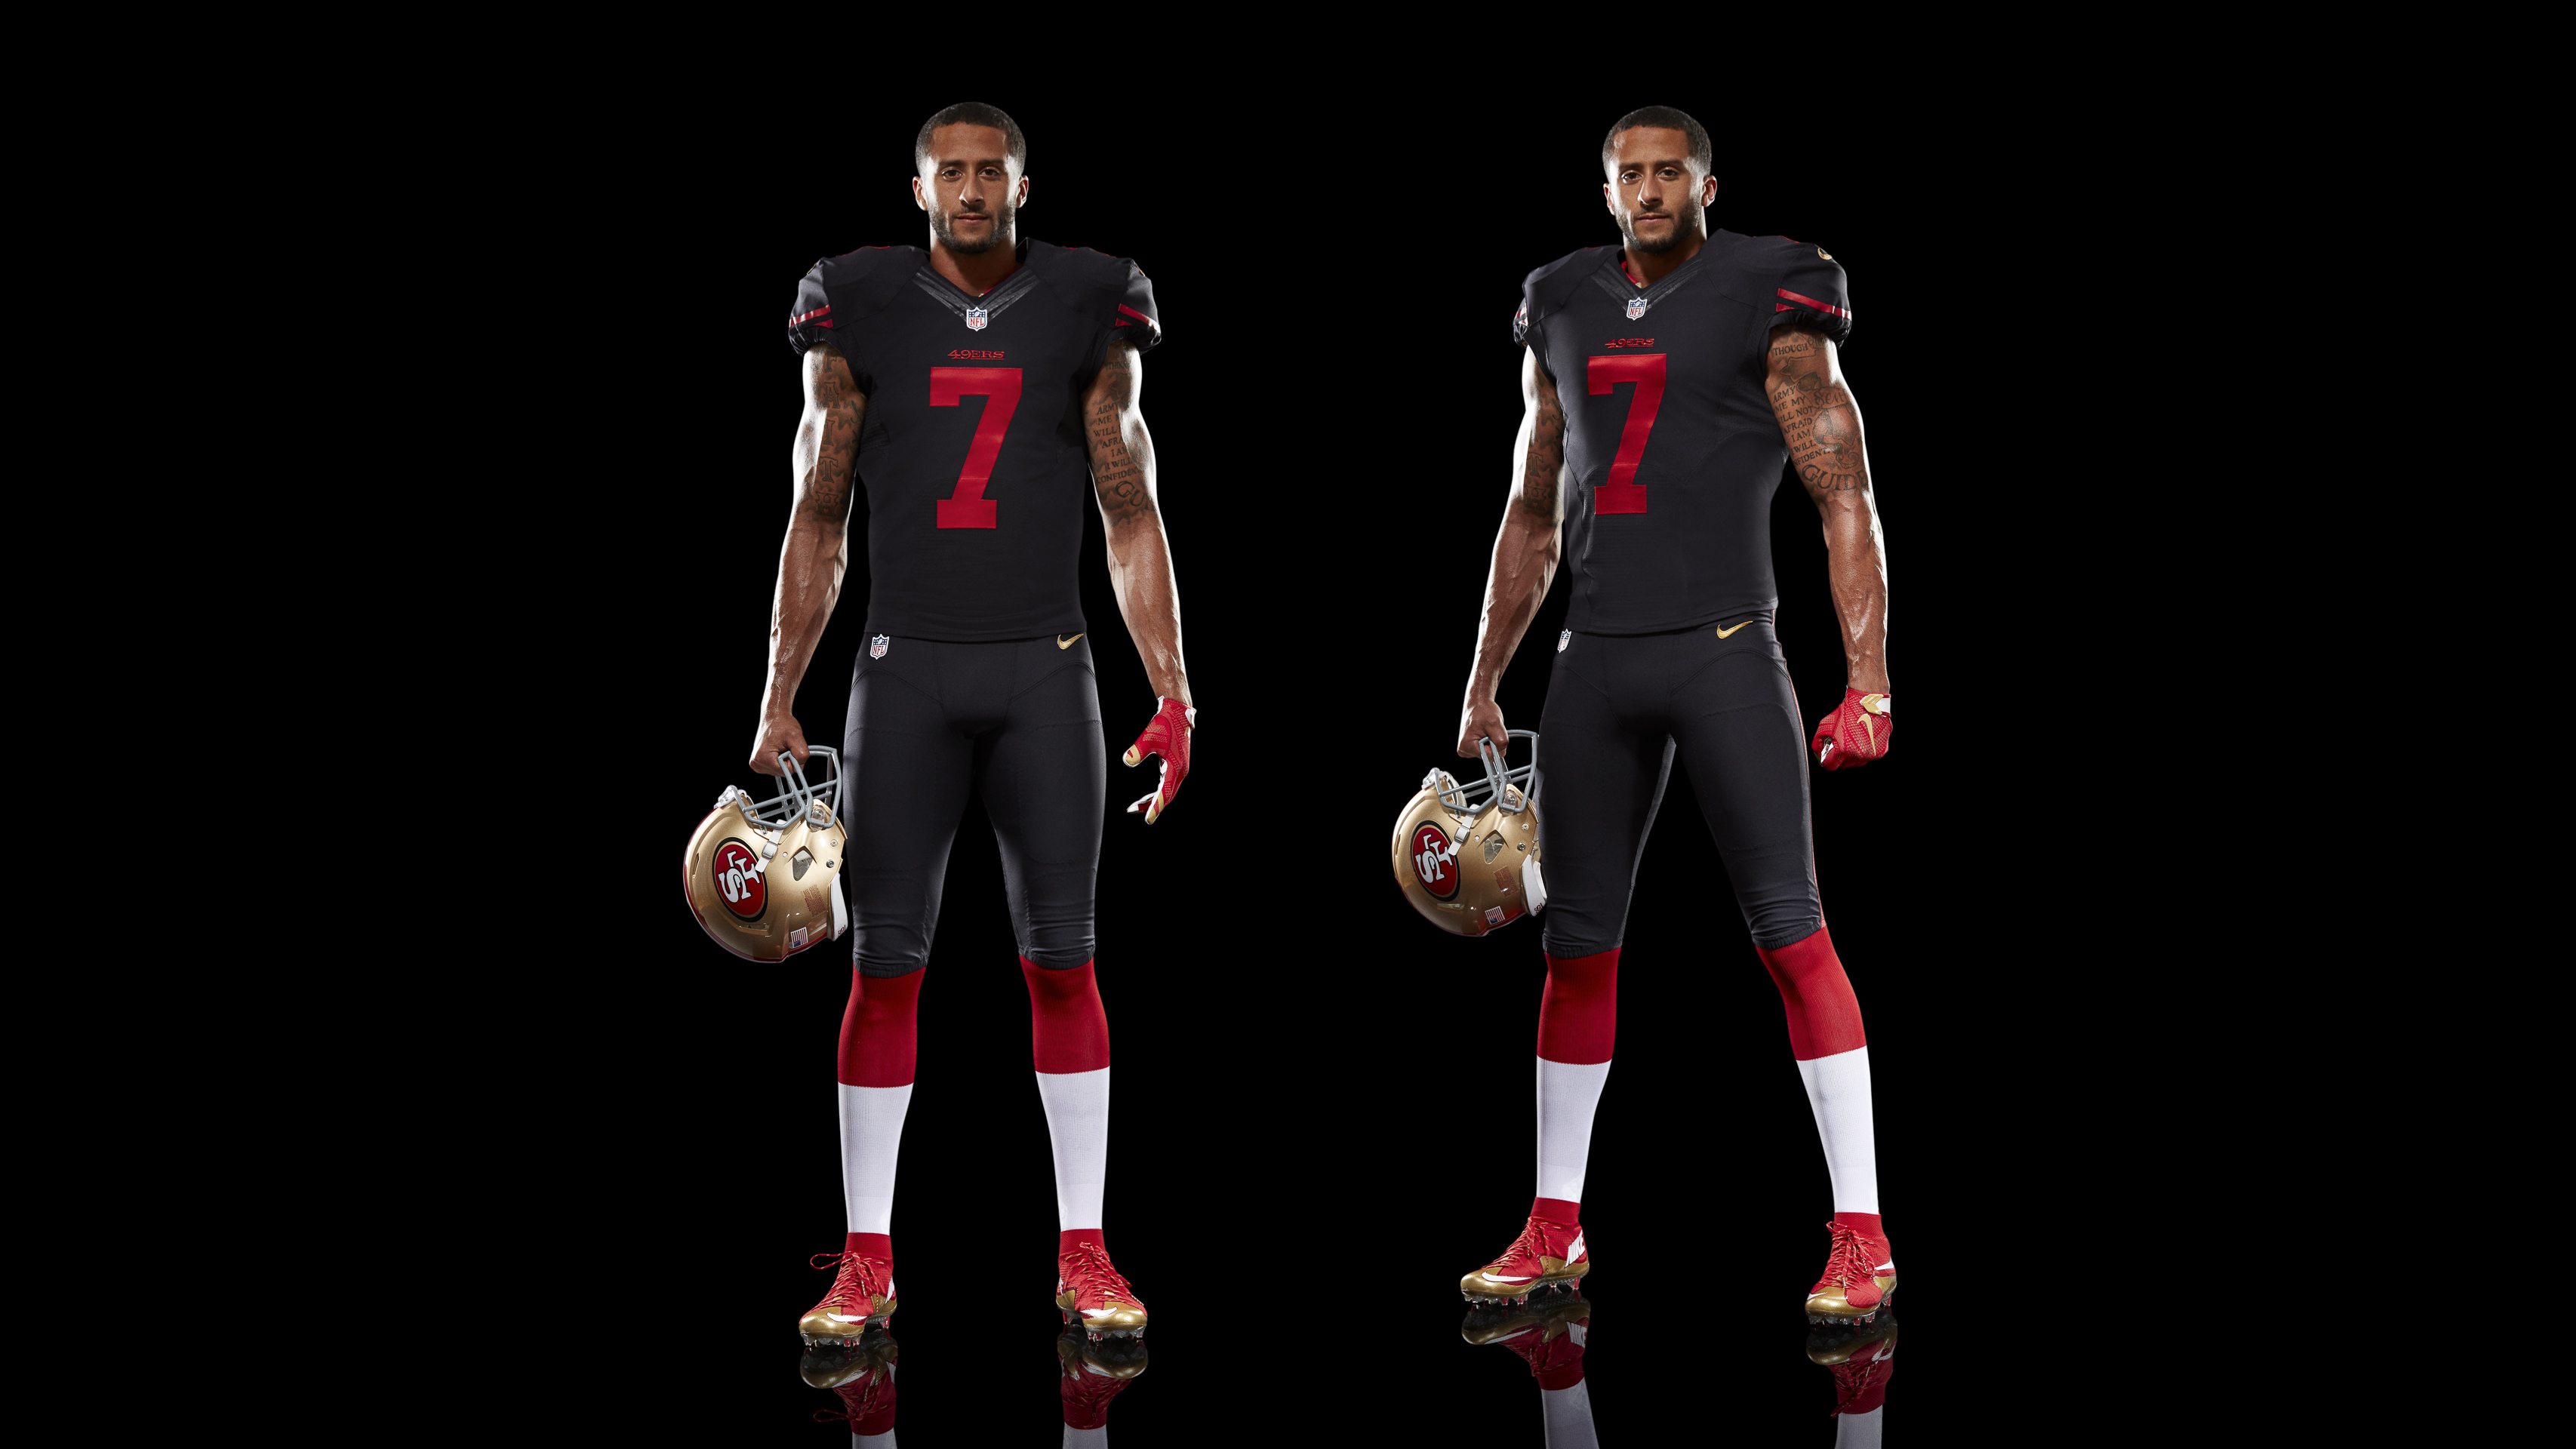 ee5062140 NFL color rush Nike player game jersey 49ers